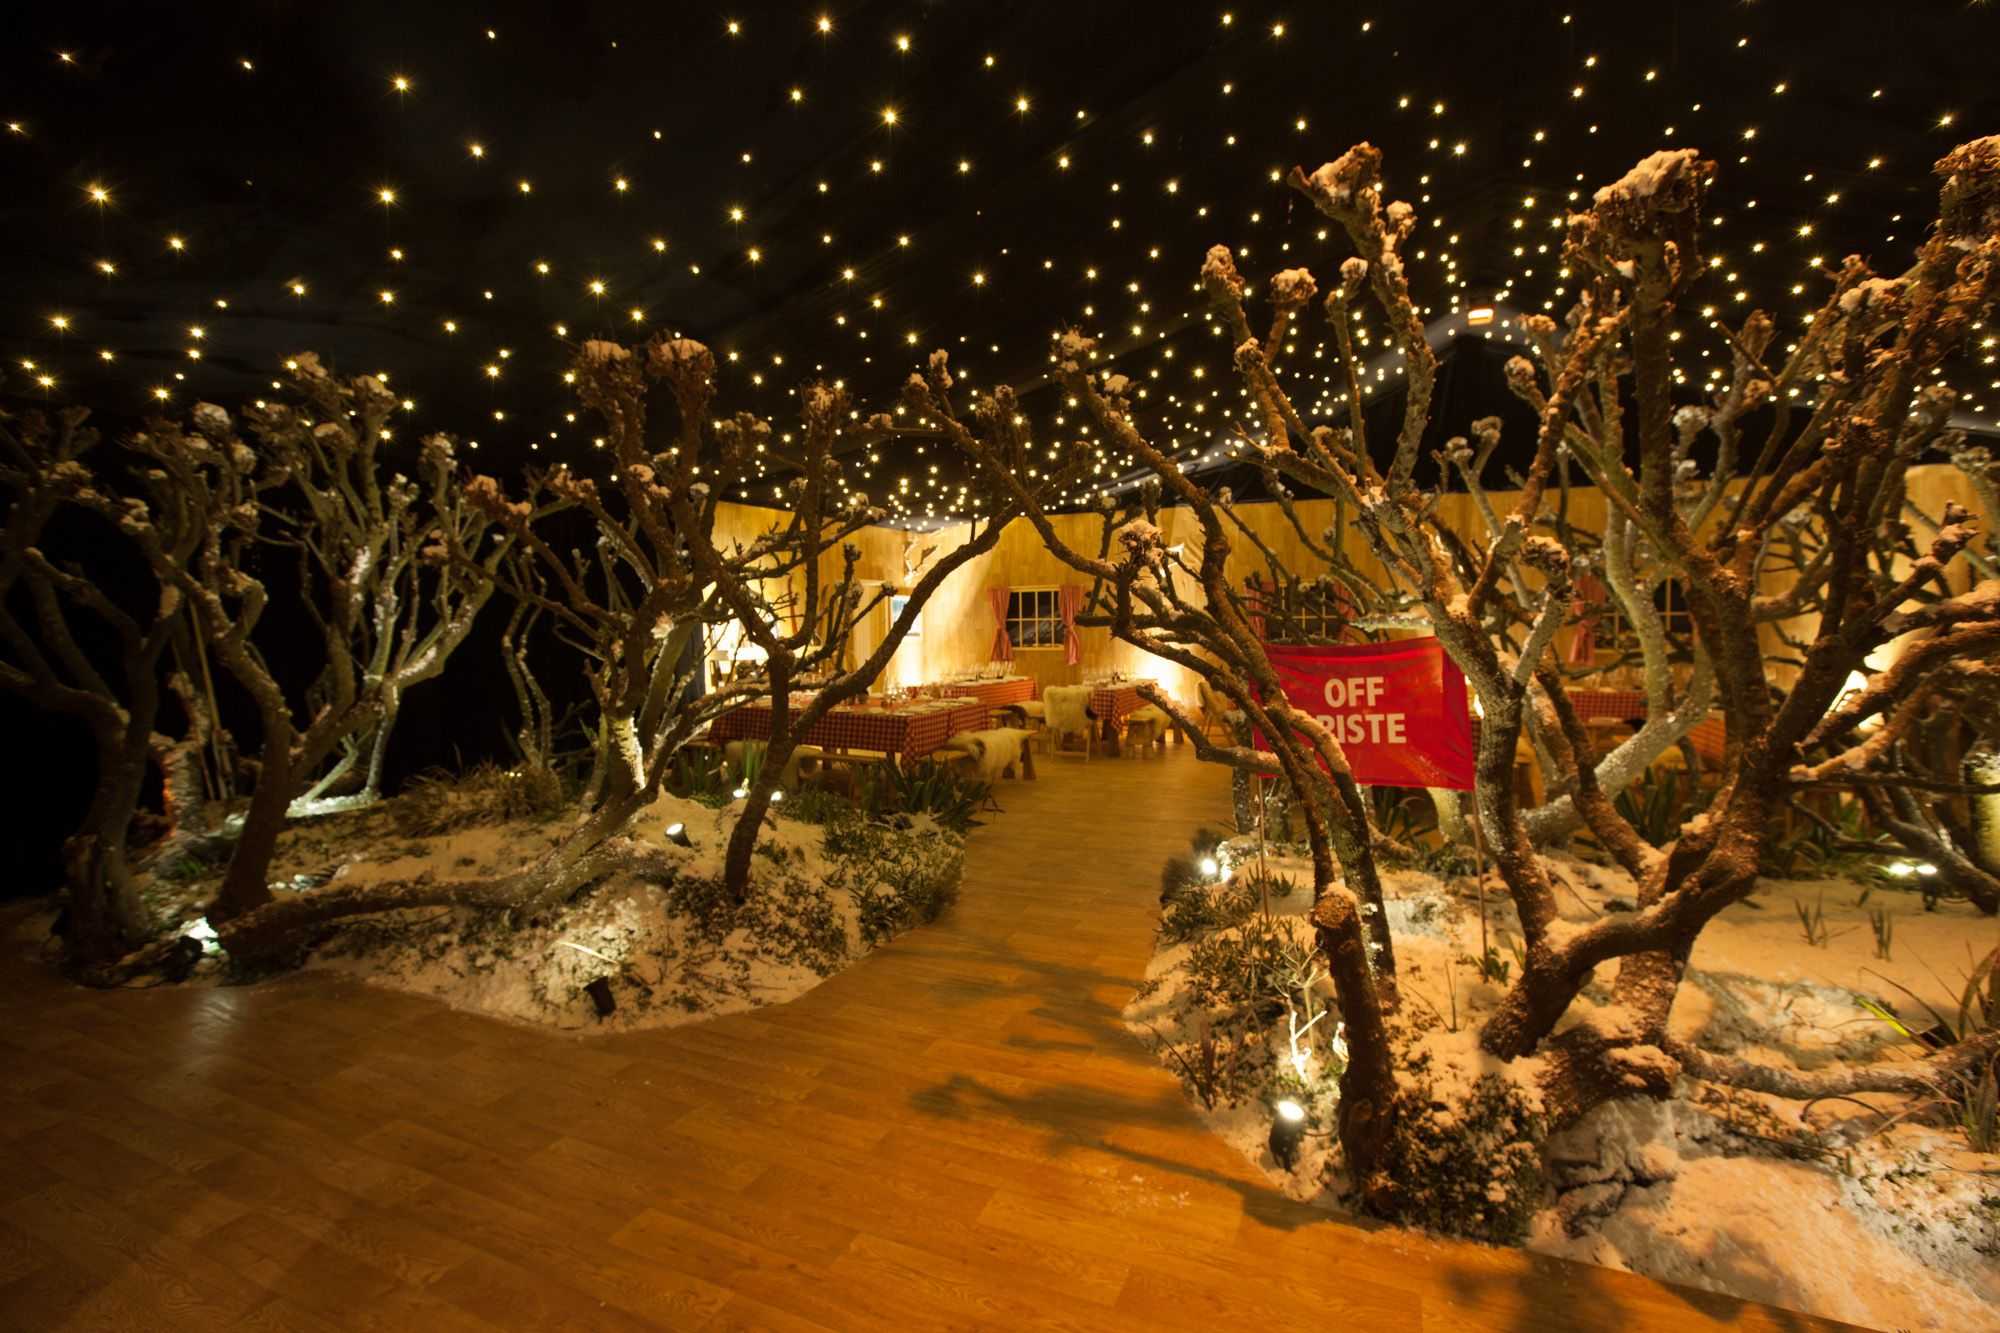 Ski Chalet Styled 21st Birthday Marquee Party Apres Ski Party Ski Lodge Christmas Ski Lodge Party